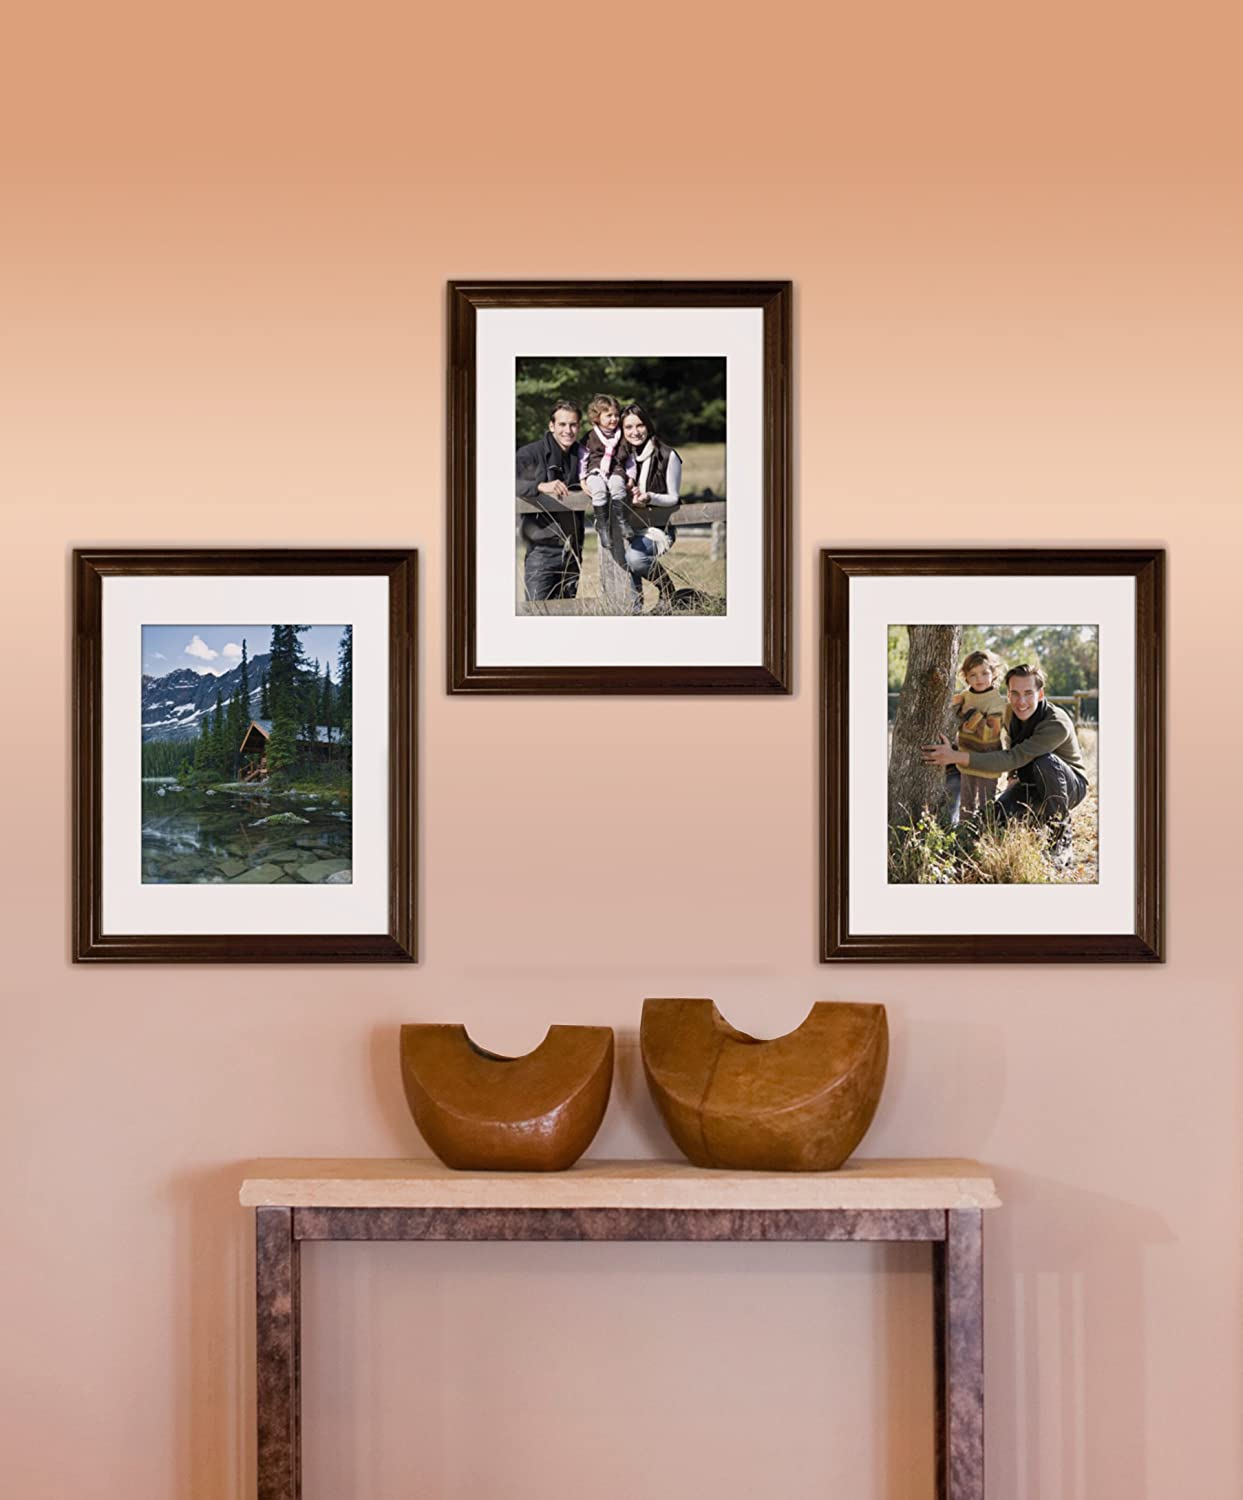 Black Timeless Frames 11x14 Inch Fits 8x10 Inch Photo Supreme Solid Wood Wall Frame